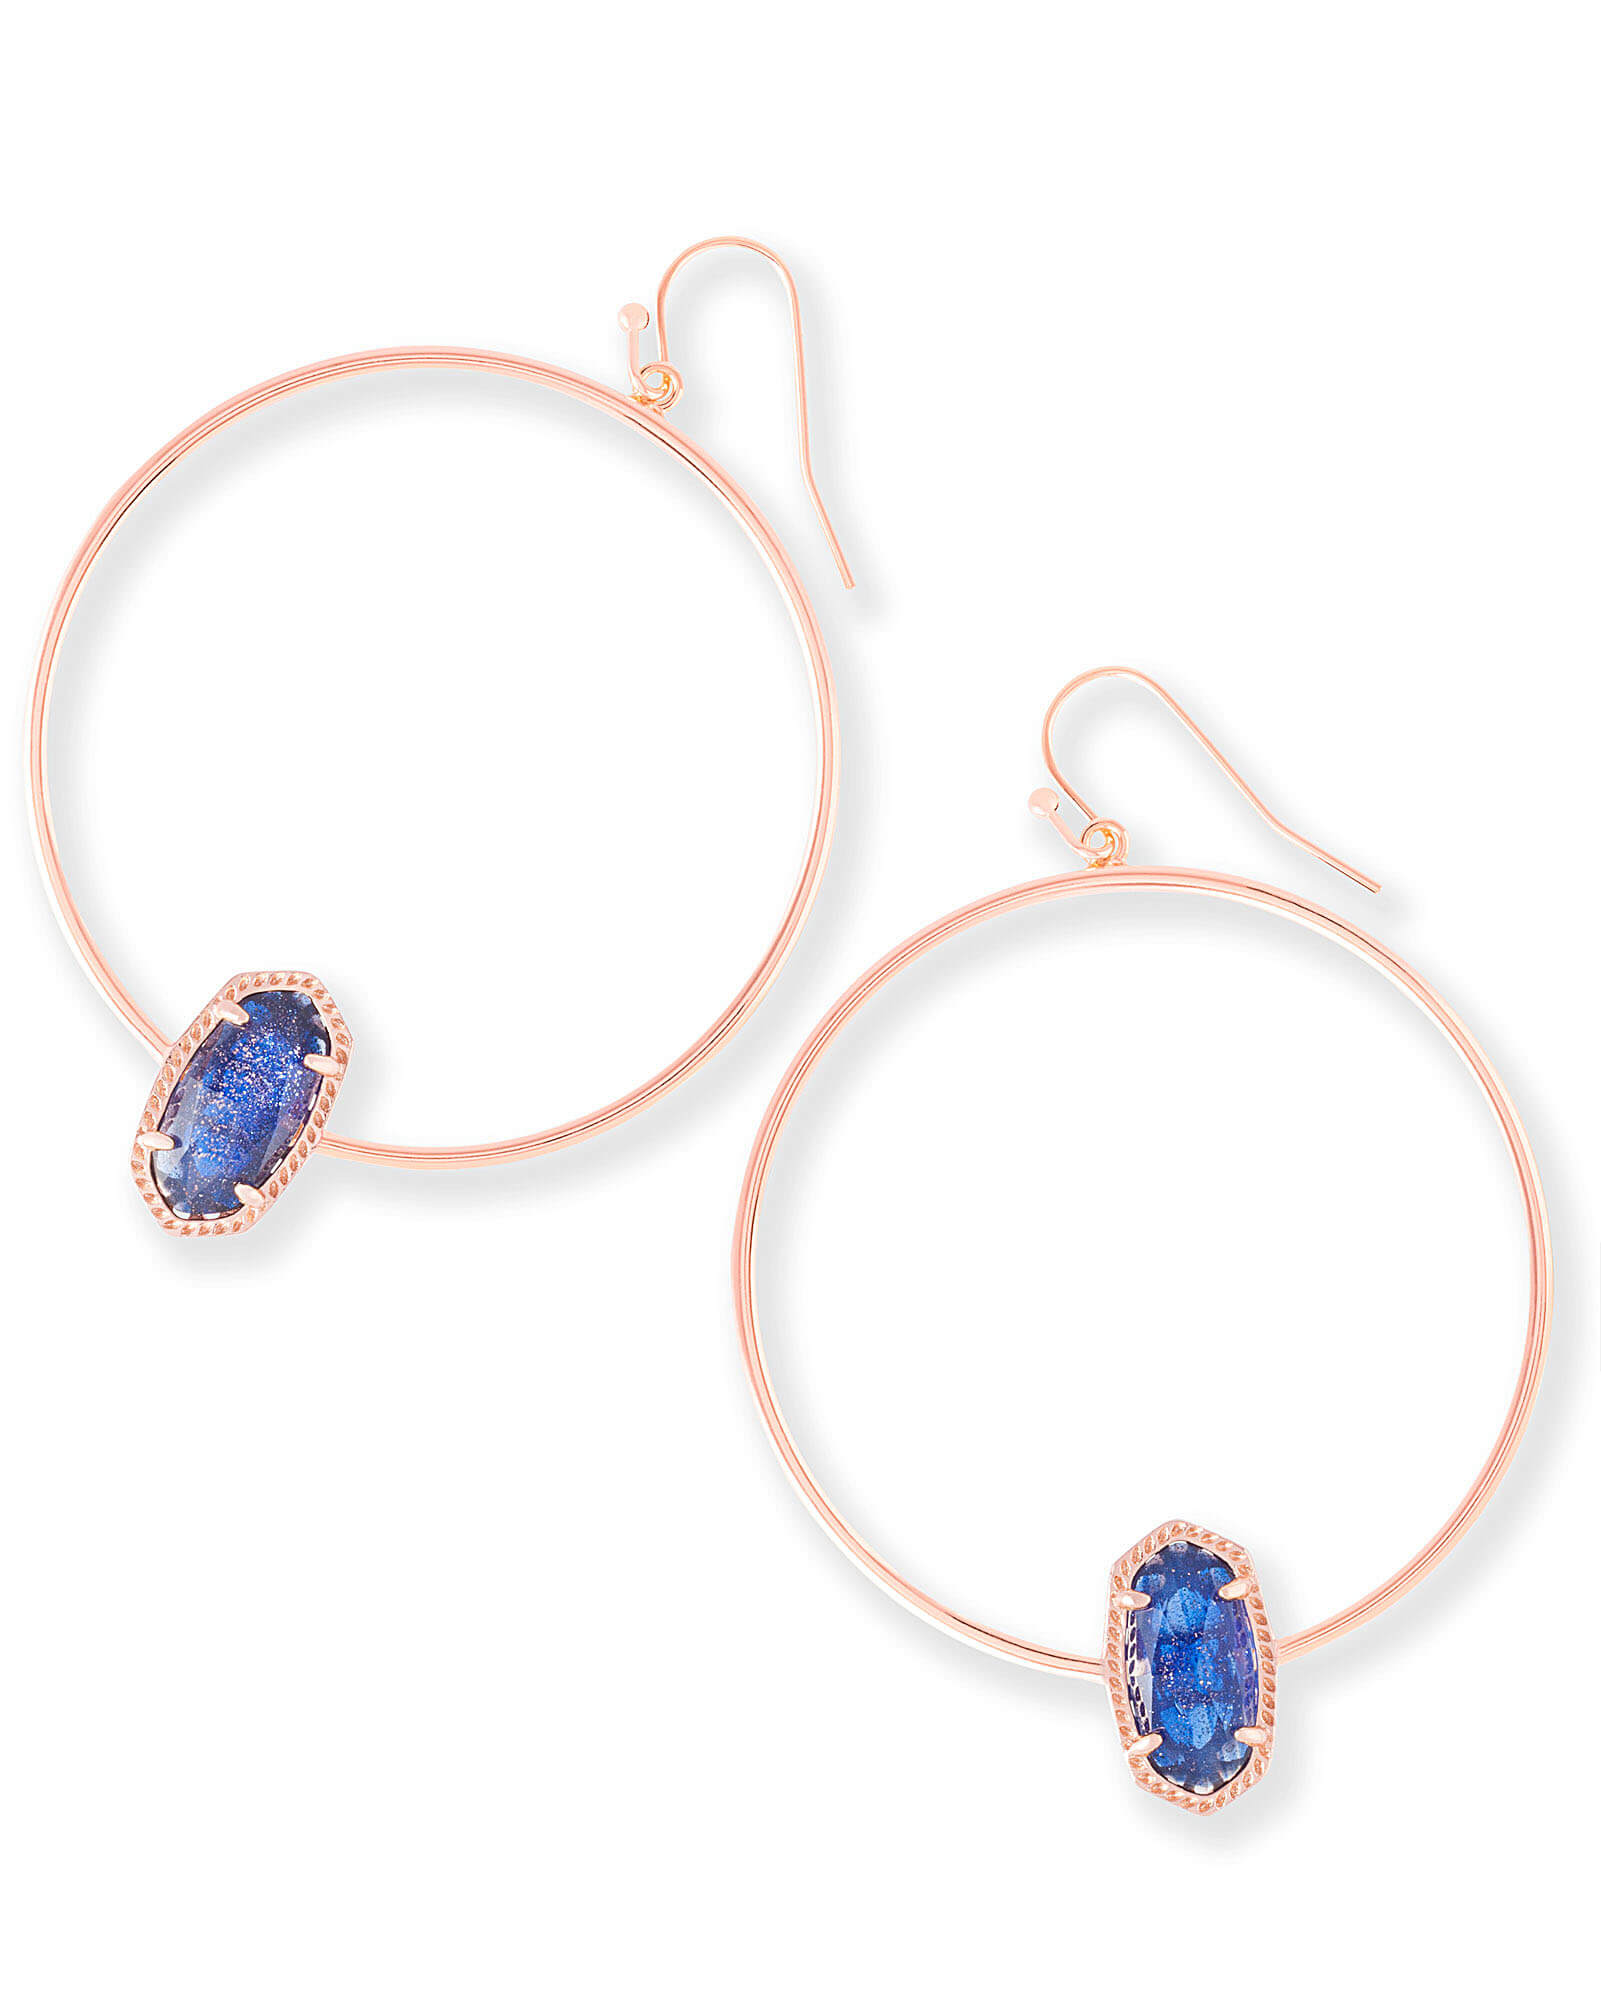 Elora Hoop Earrings in Navy Dusted Glass